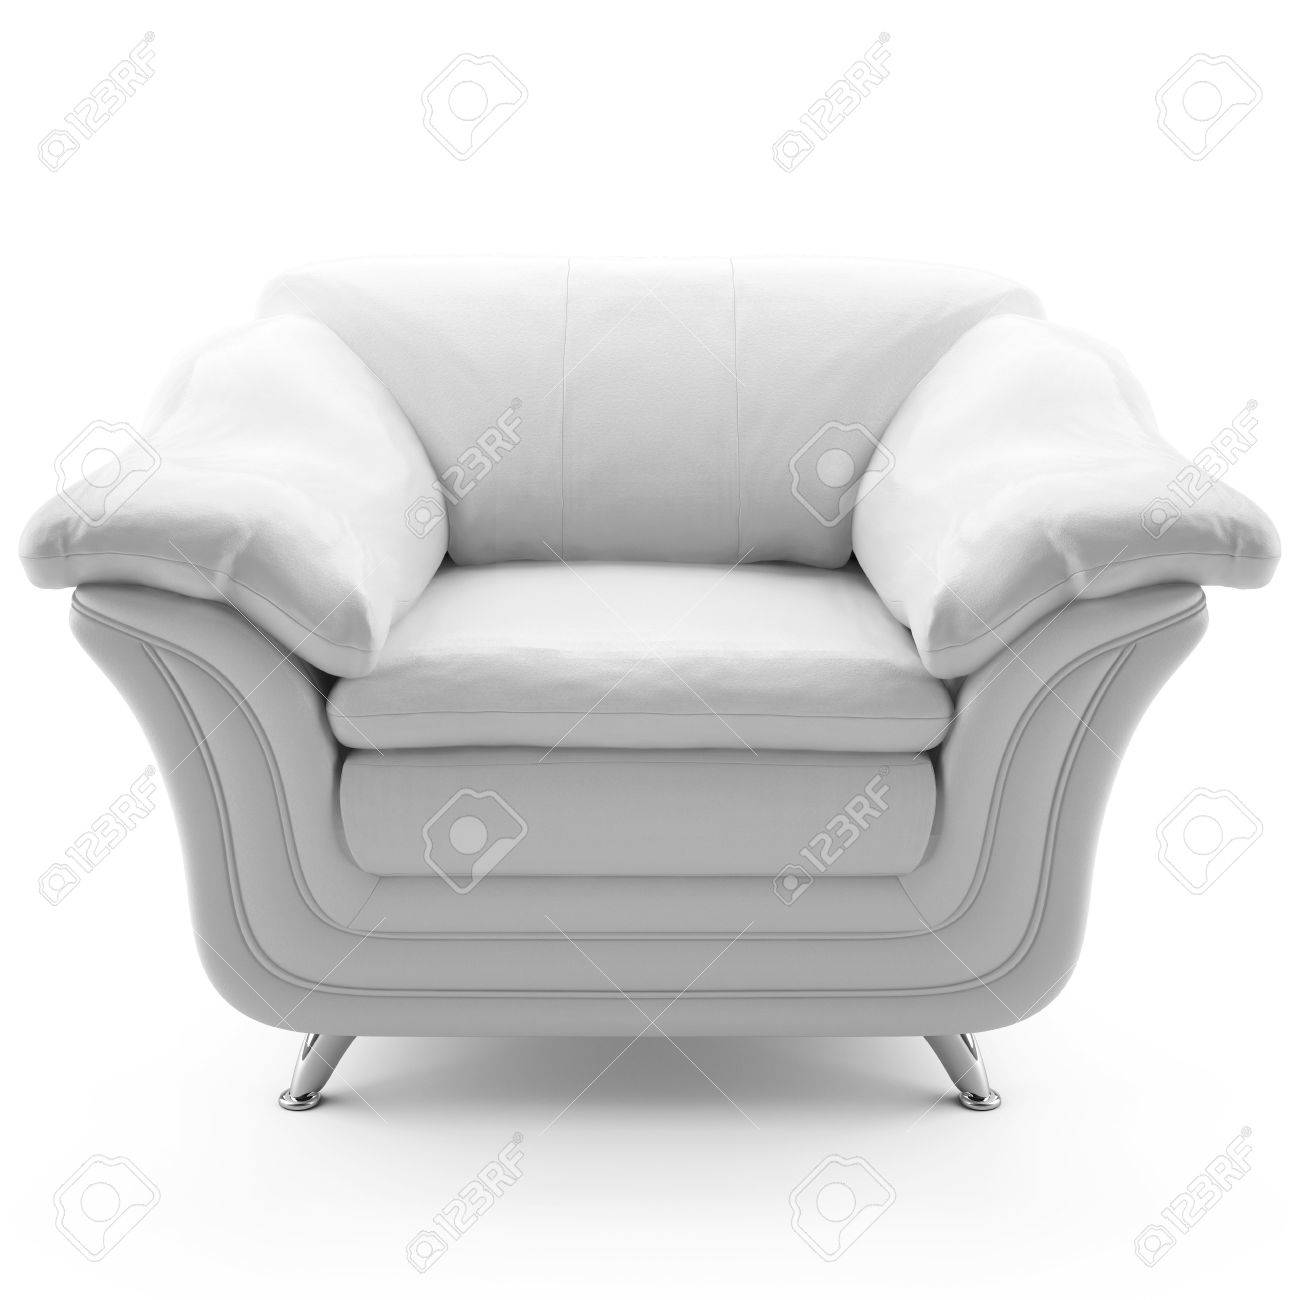 This 3D Image White Leather Armchair Stock Photo   6790278